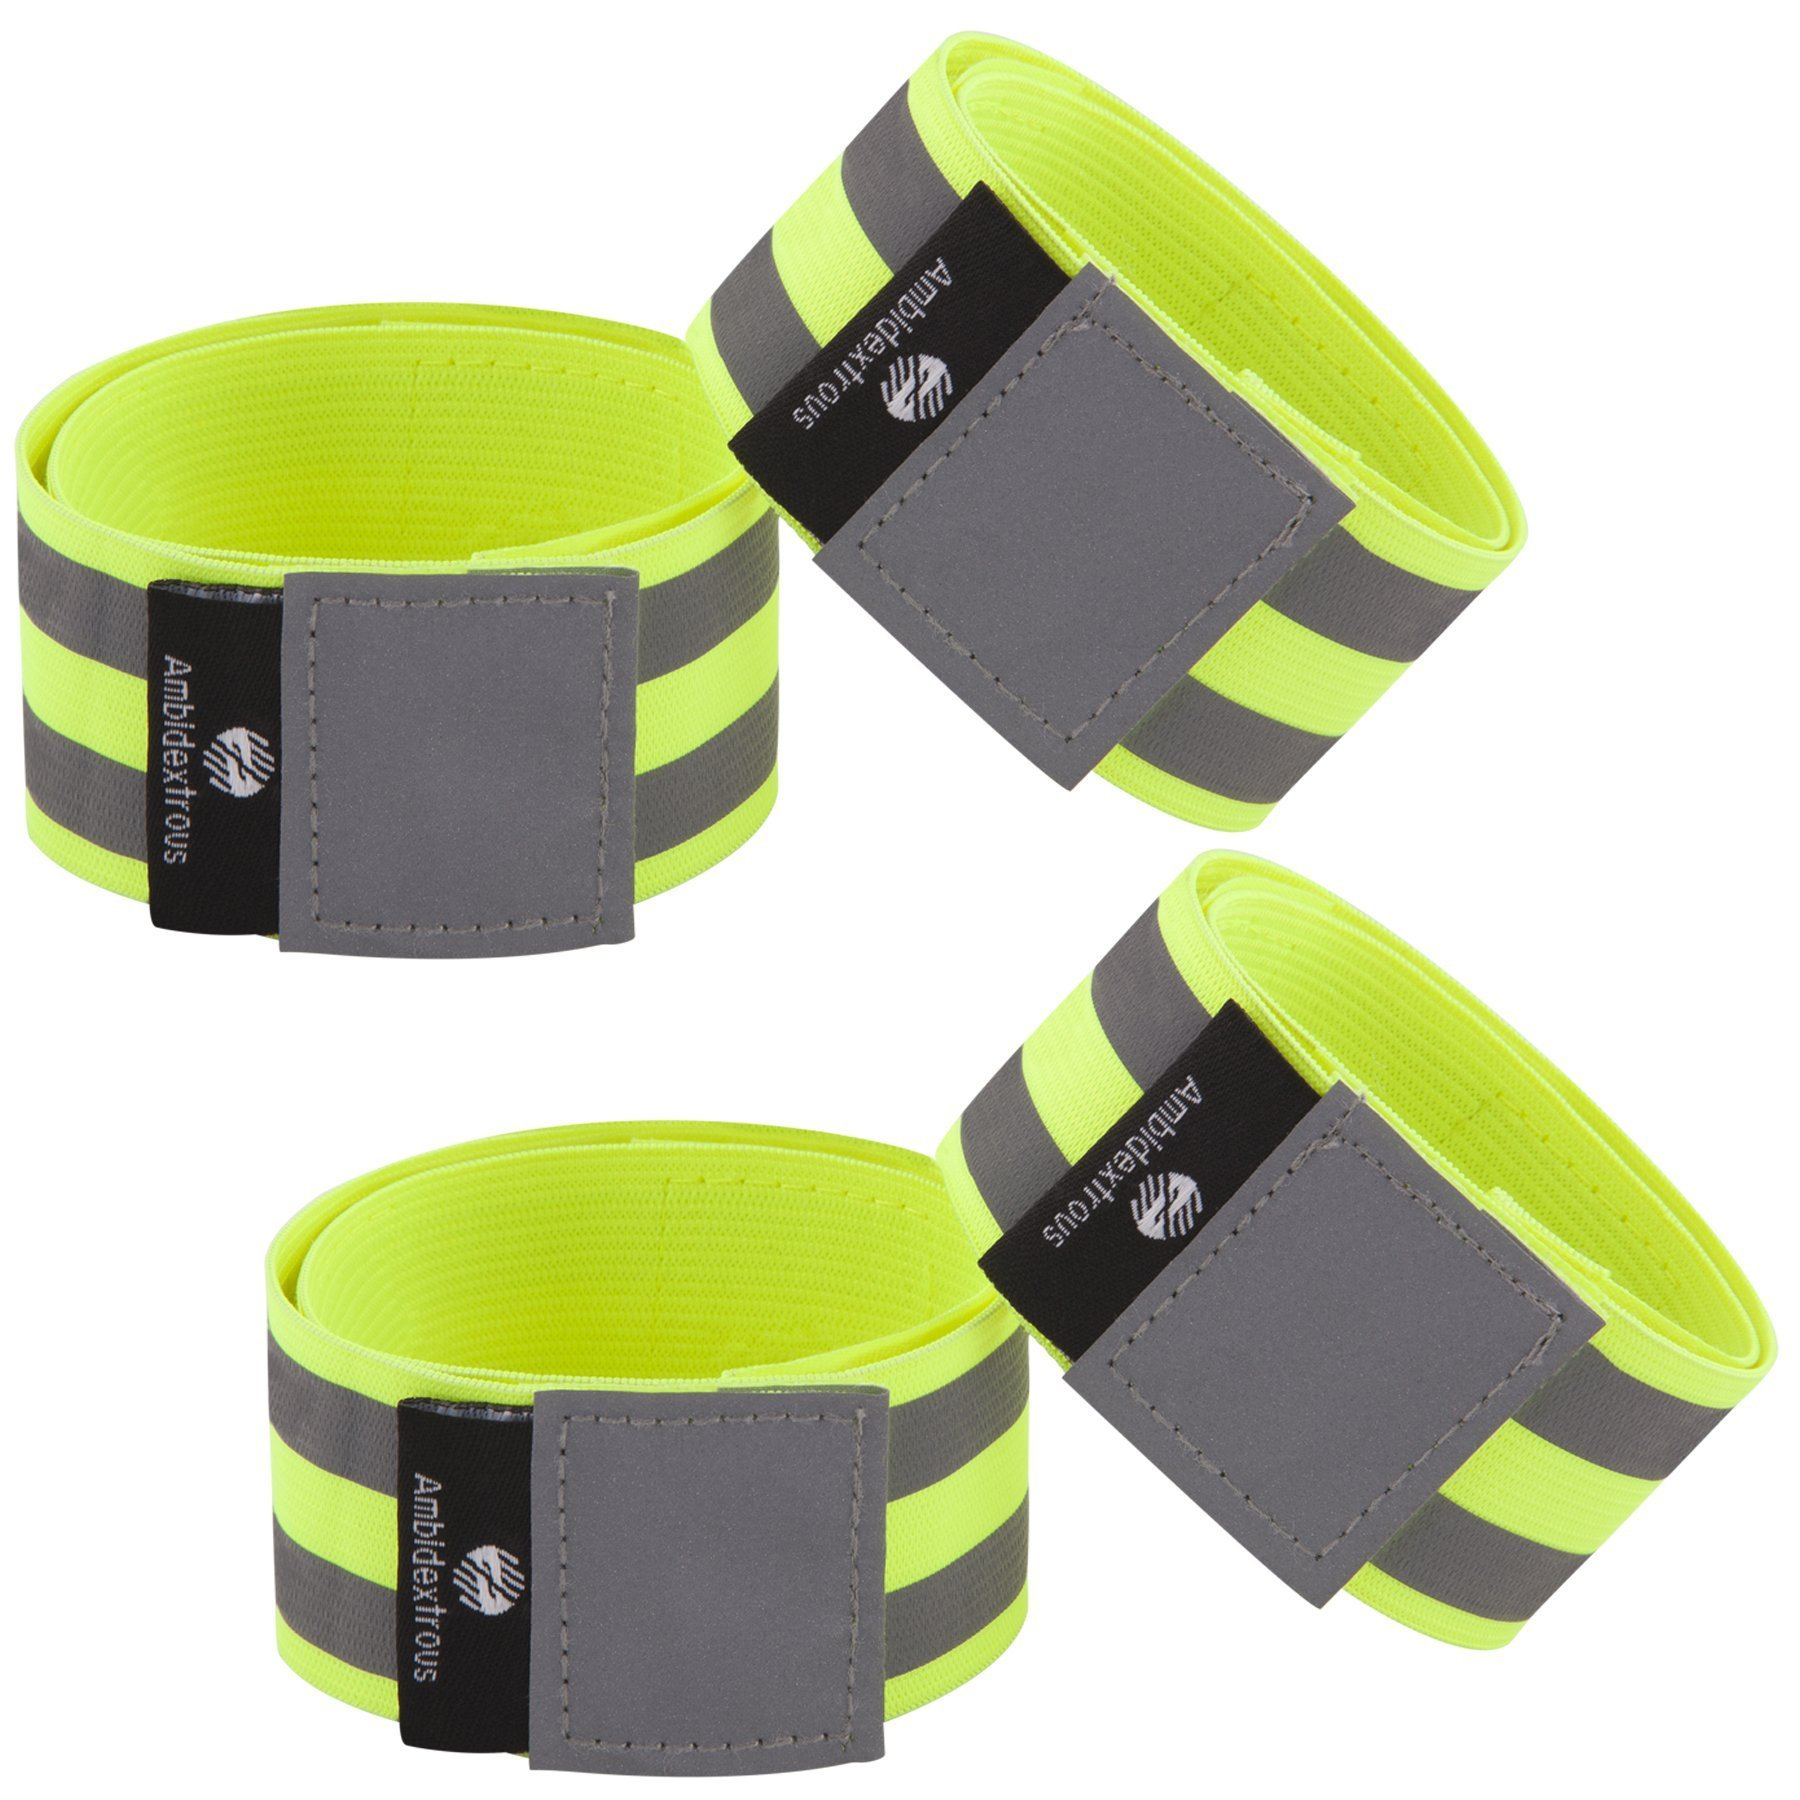 Reflective Reflectors Wristbands Reflector Visibility